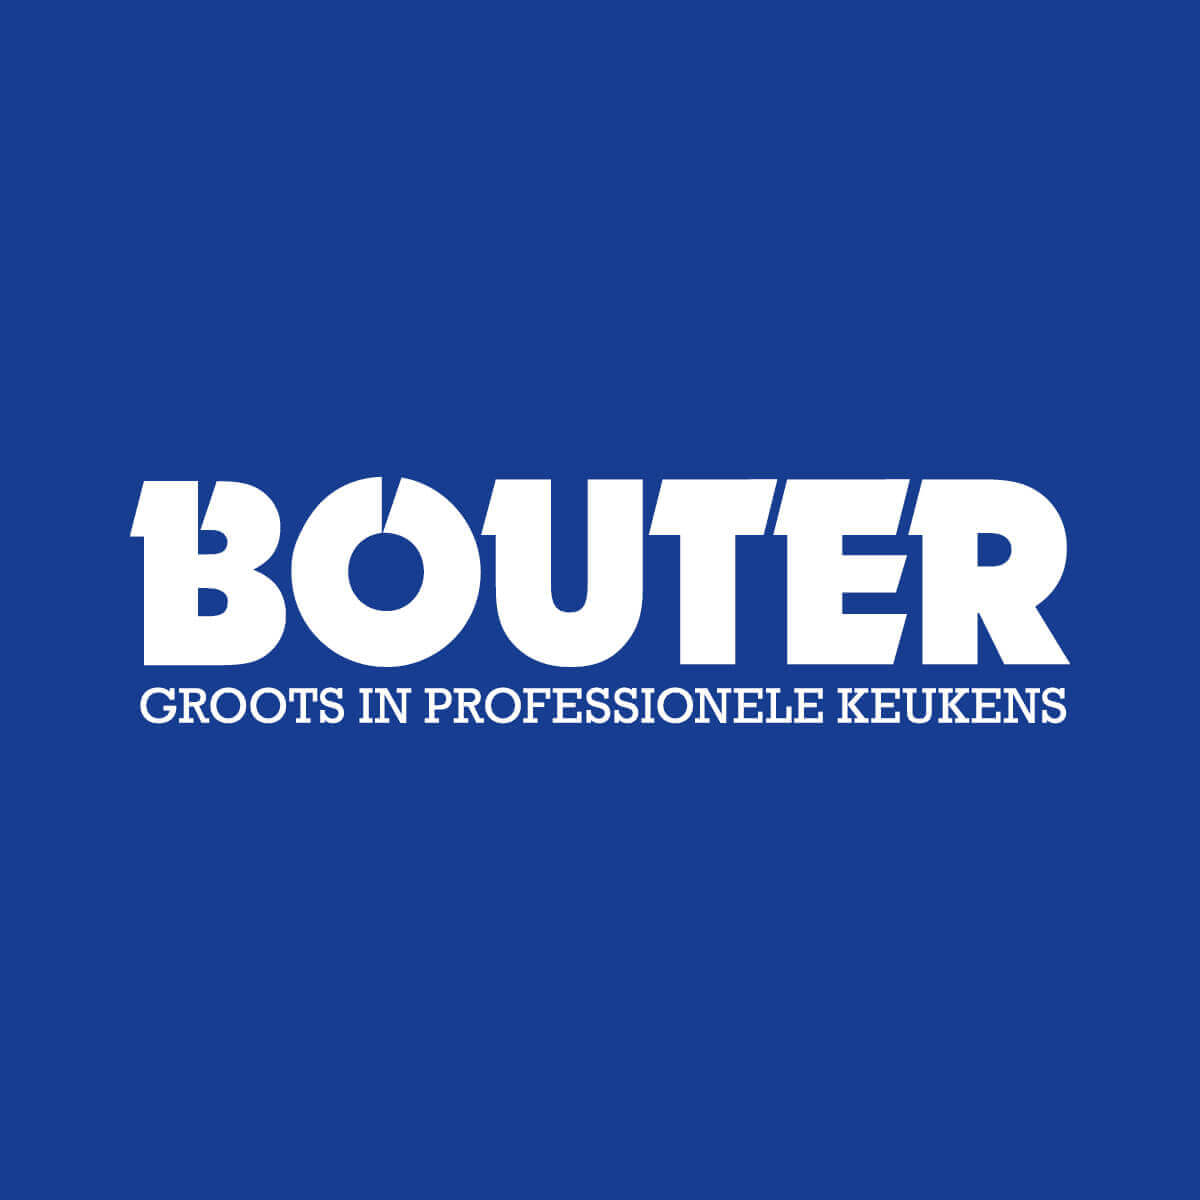 bouter